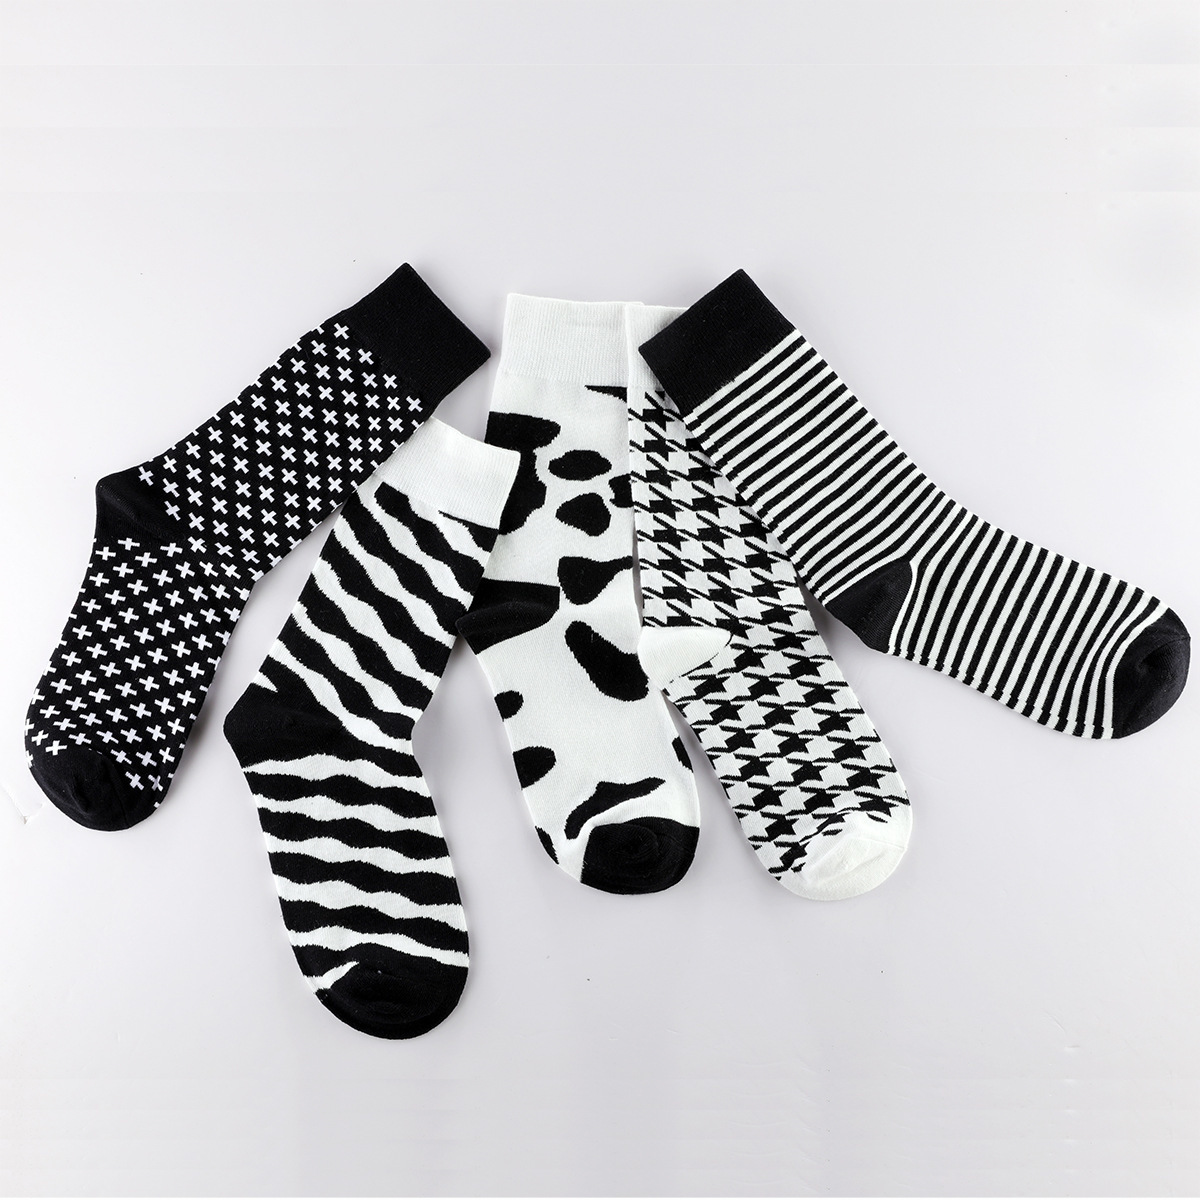 Vintage Harajuku Men Socks Classic Black White Striped Plaid Printed Socks Geometric Hip Hop Cotton Streetwear Novelty Socks